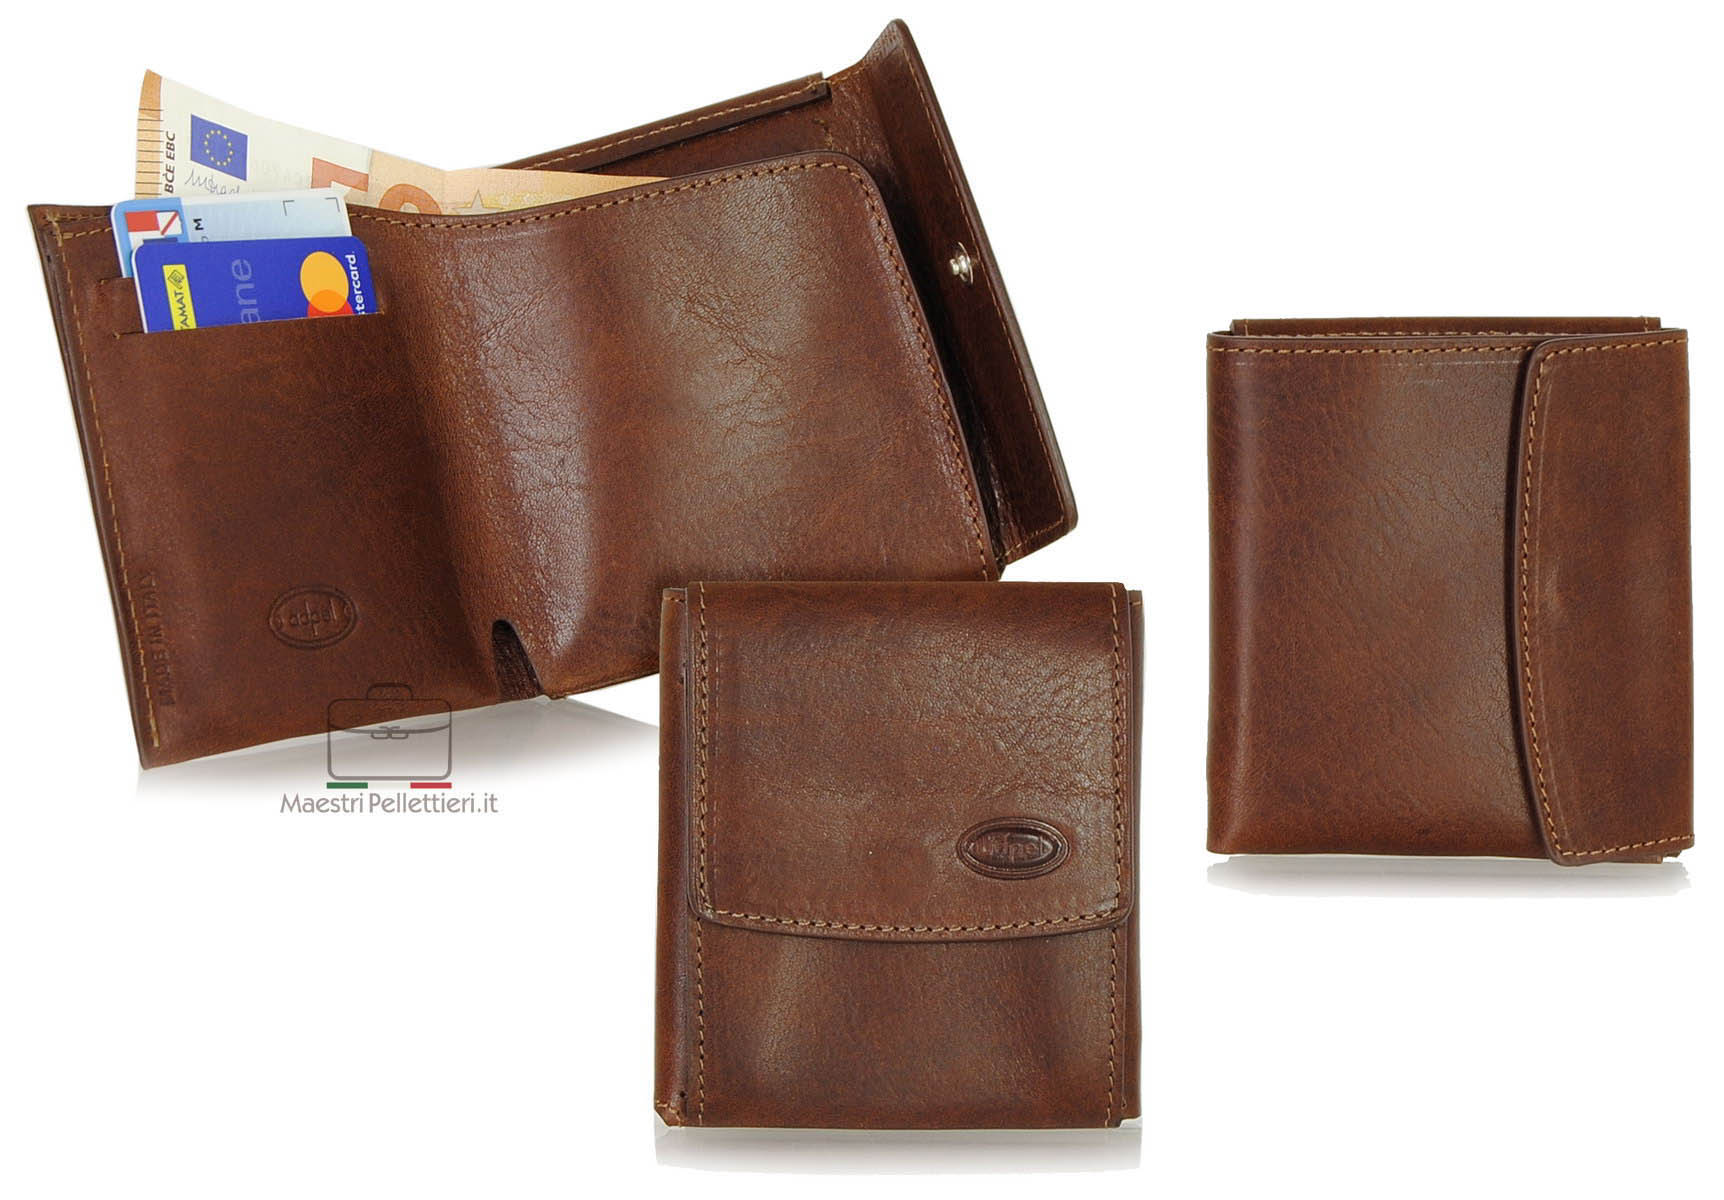 compact minimalistic leather wallet